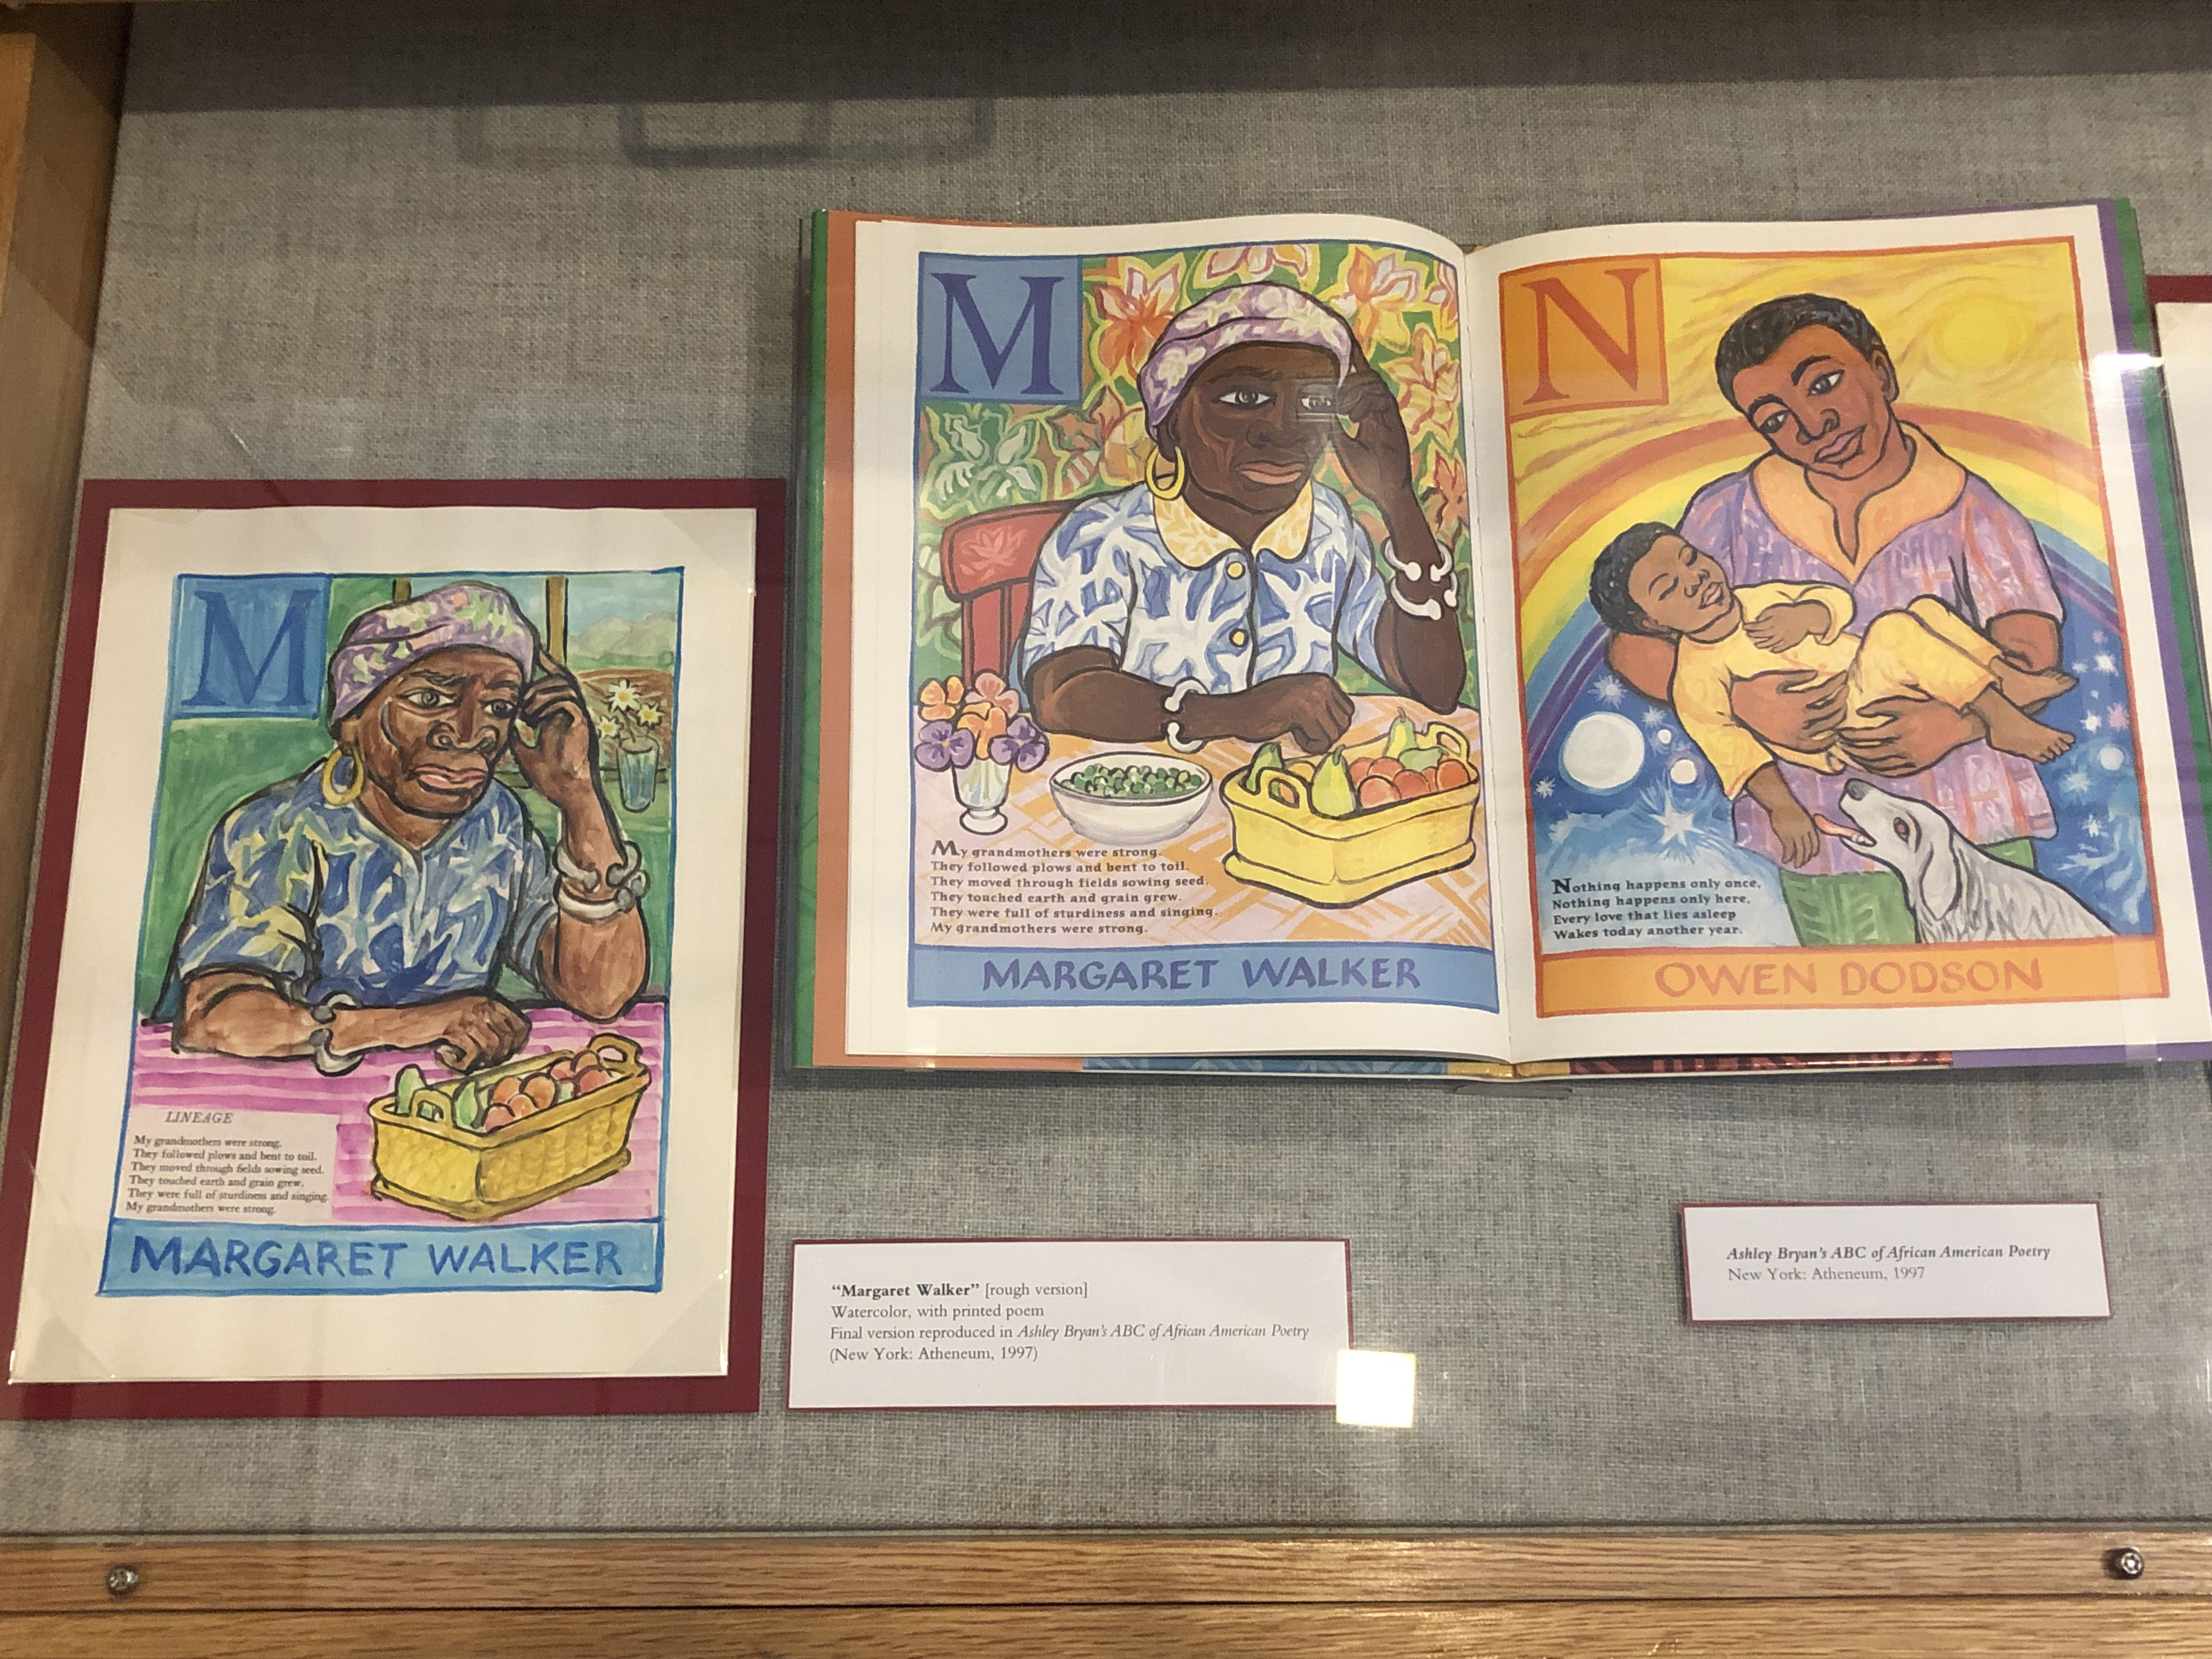 Remarkable Figures, detail of Drawer 2 - Ashley Bryan's ABC's of African American Poetry